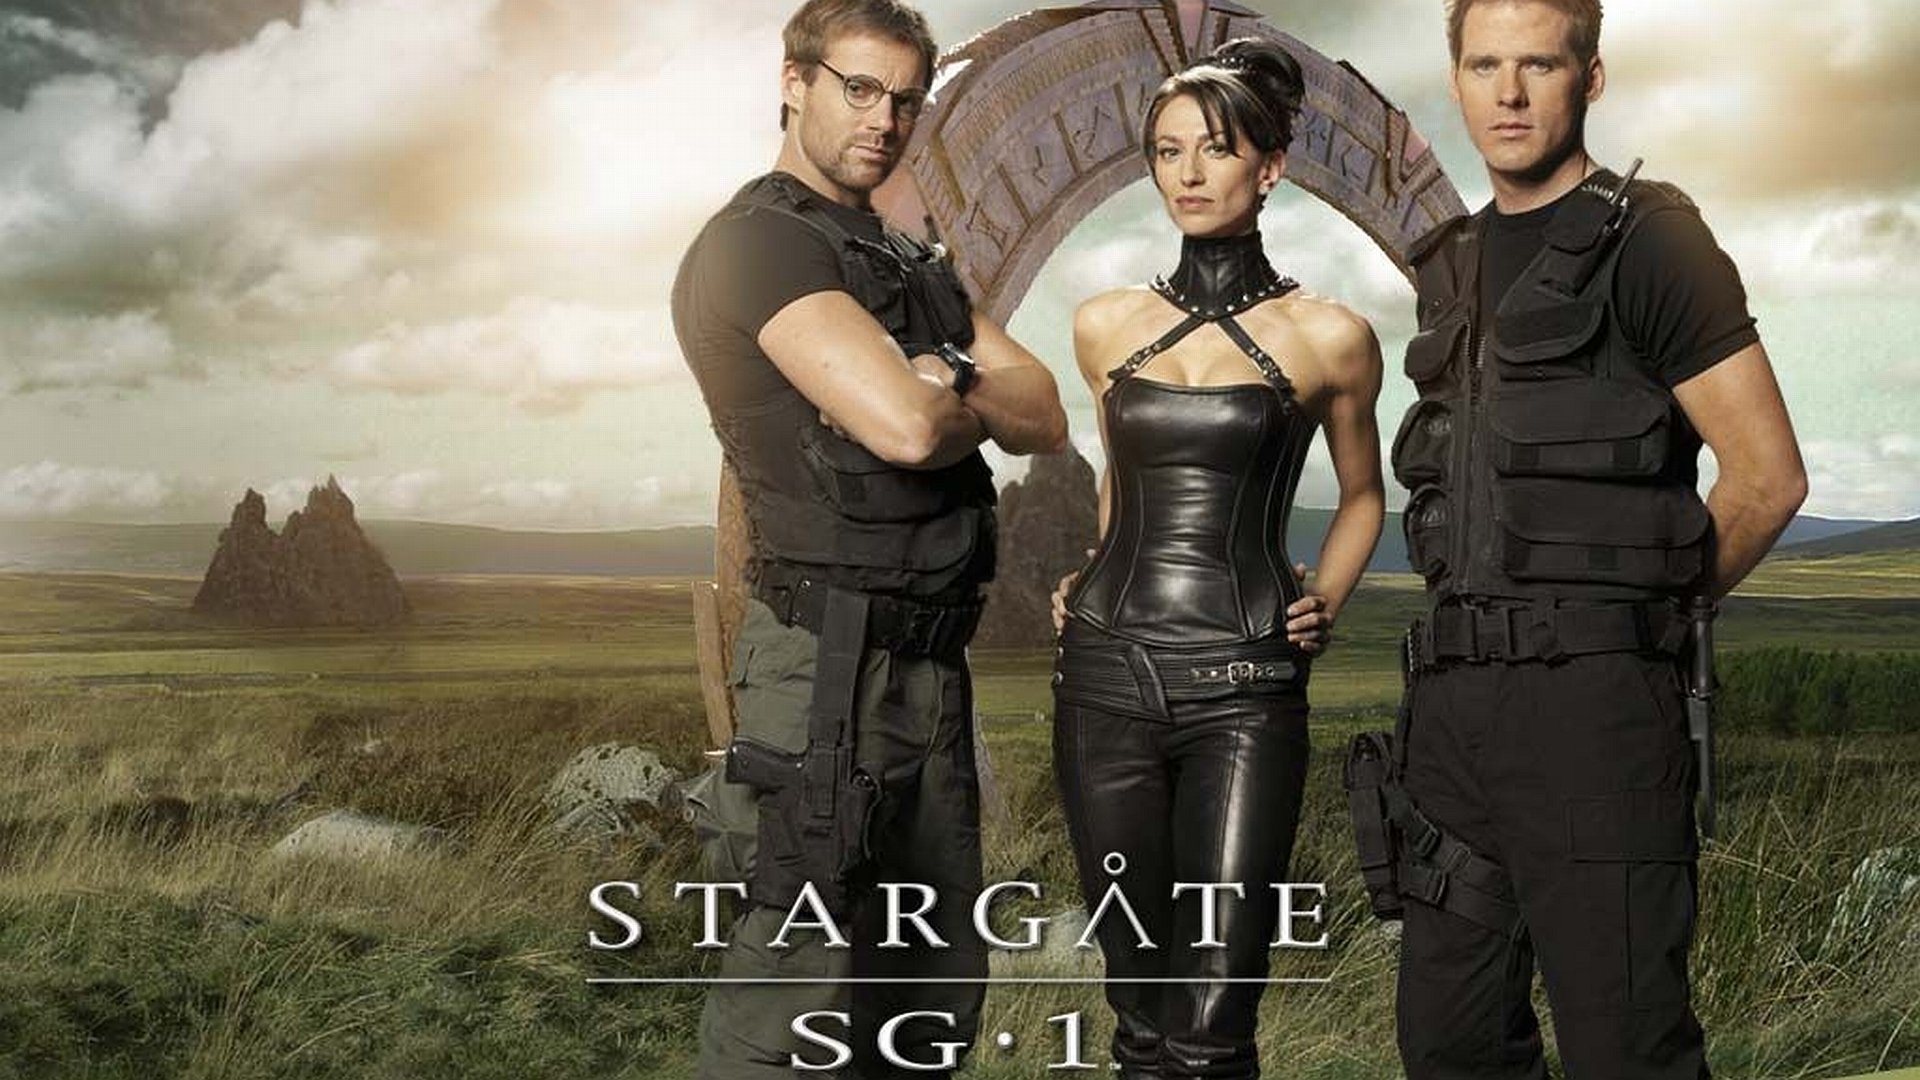 Iphone Wallpaper Michael Jackson Stargate Sg 1 Full Hd Wallpaper And Background Image